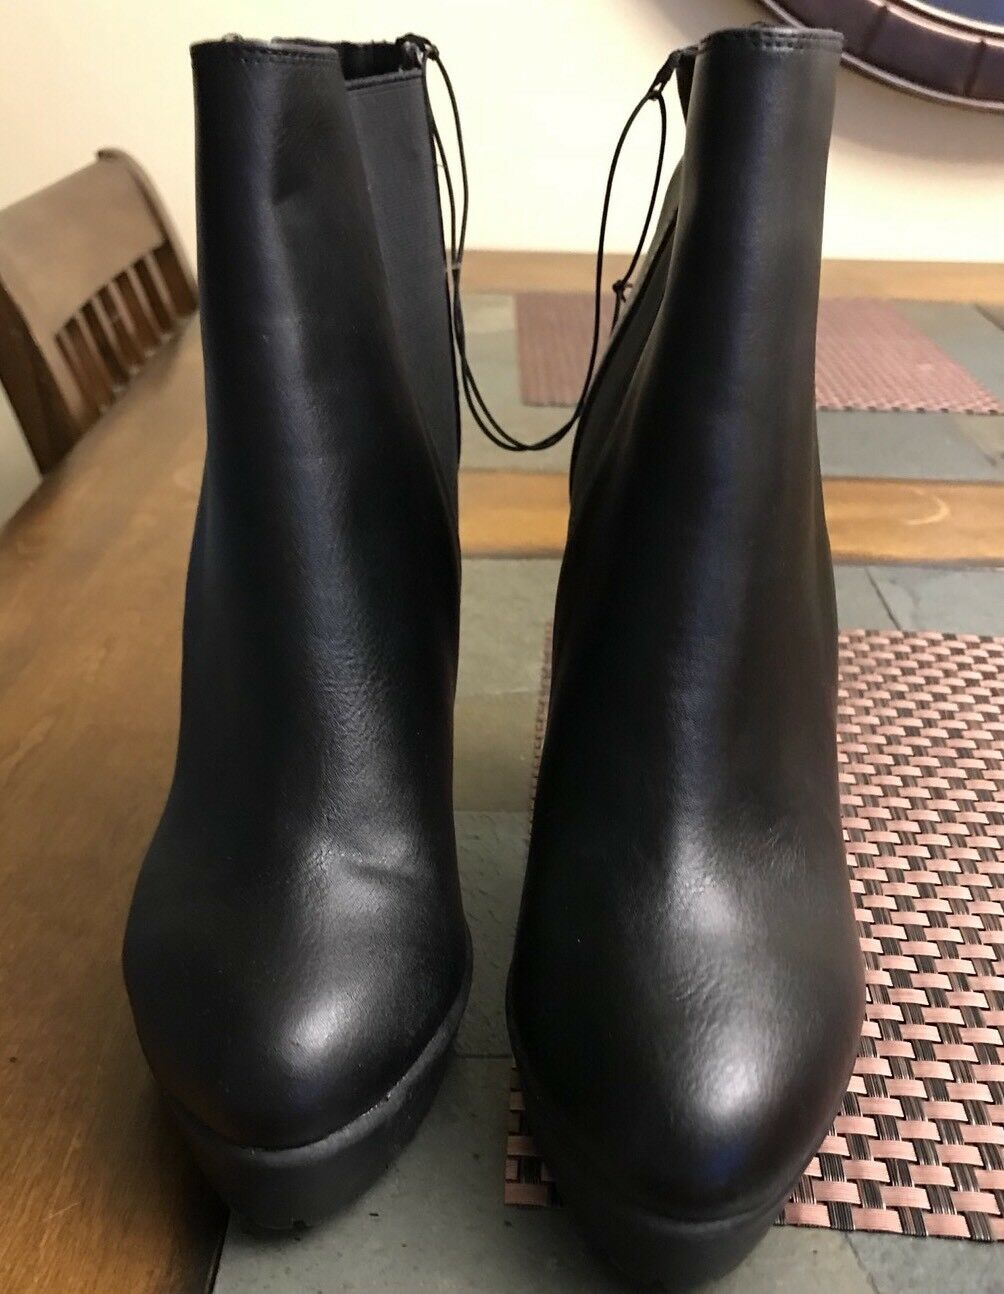 H&M Black Biker Ankle Boots Booties Size 6   37 No Box NEW HIGH HEEL WOMANS